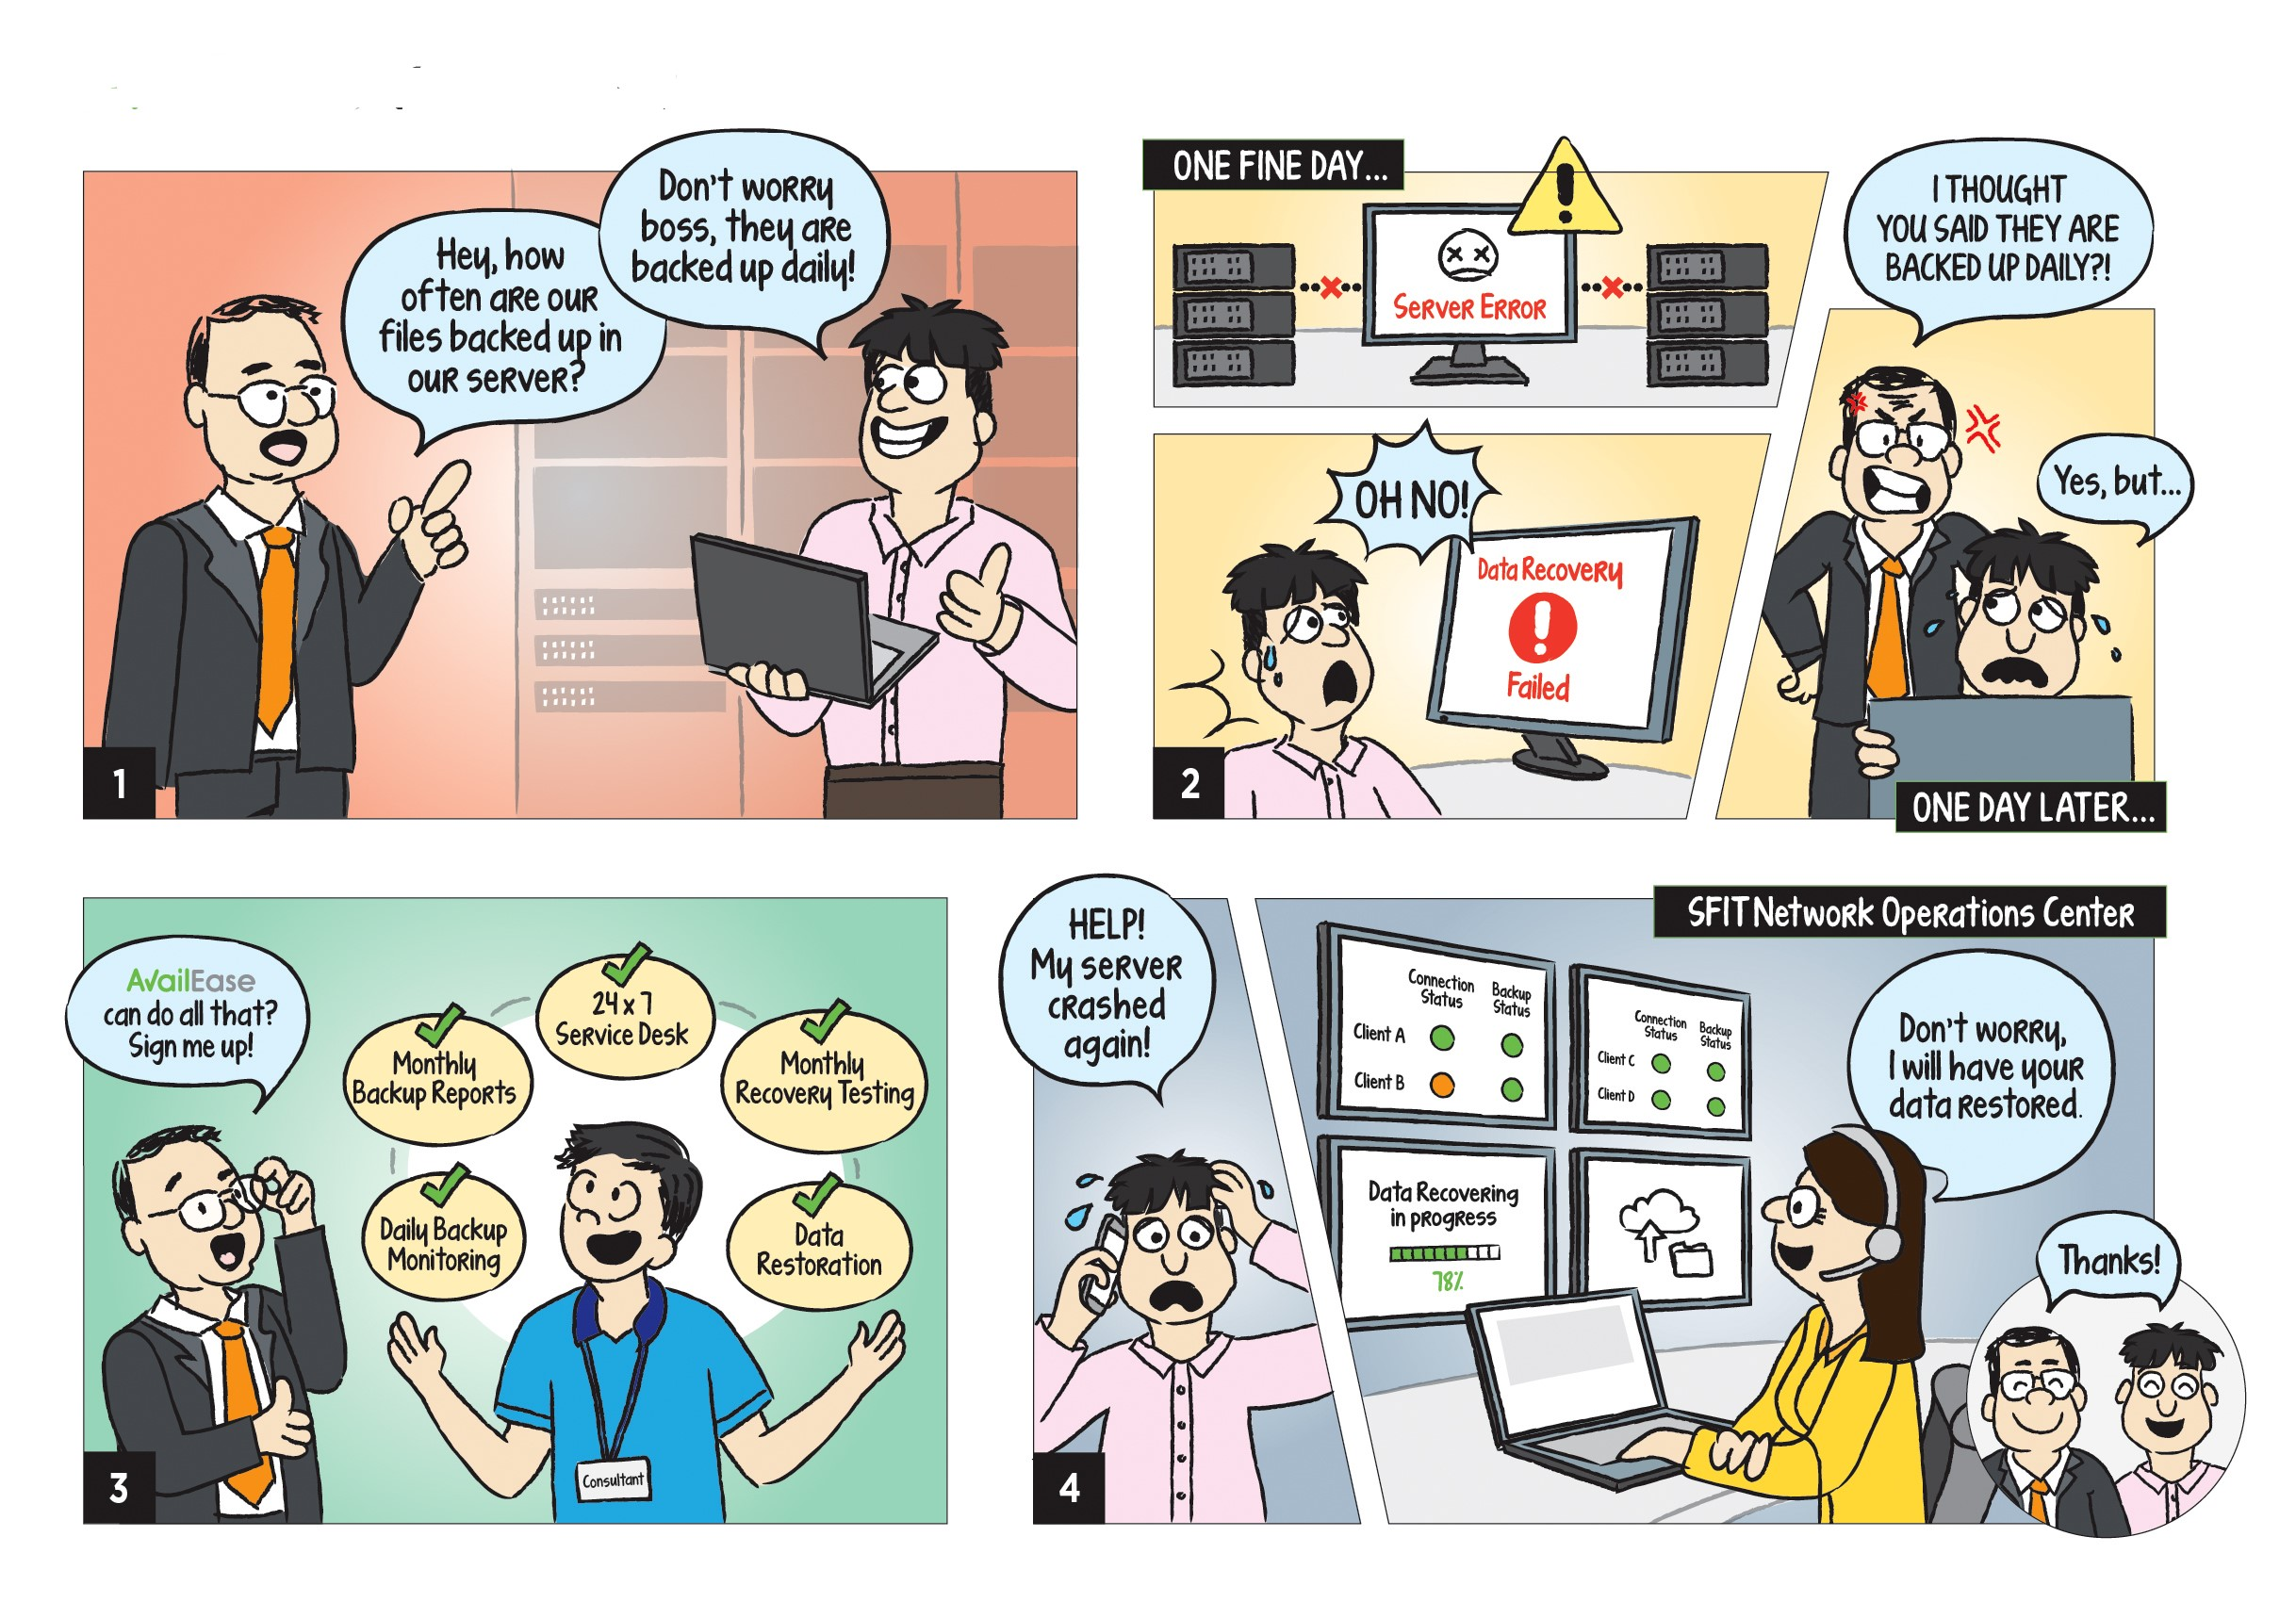 Comic Strip_Managed Backup